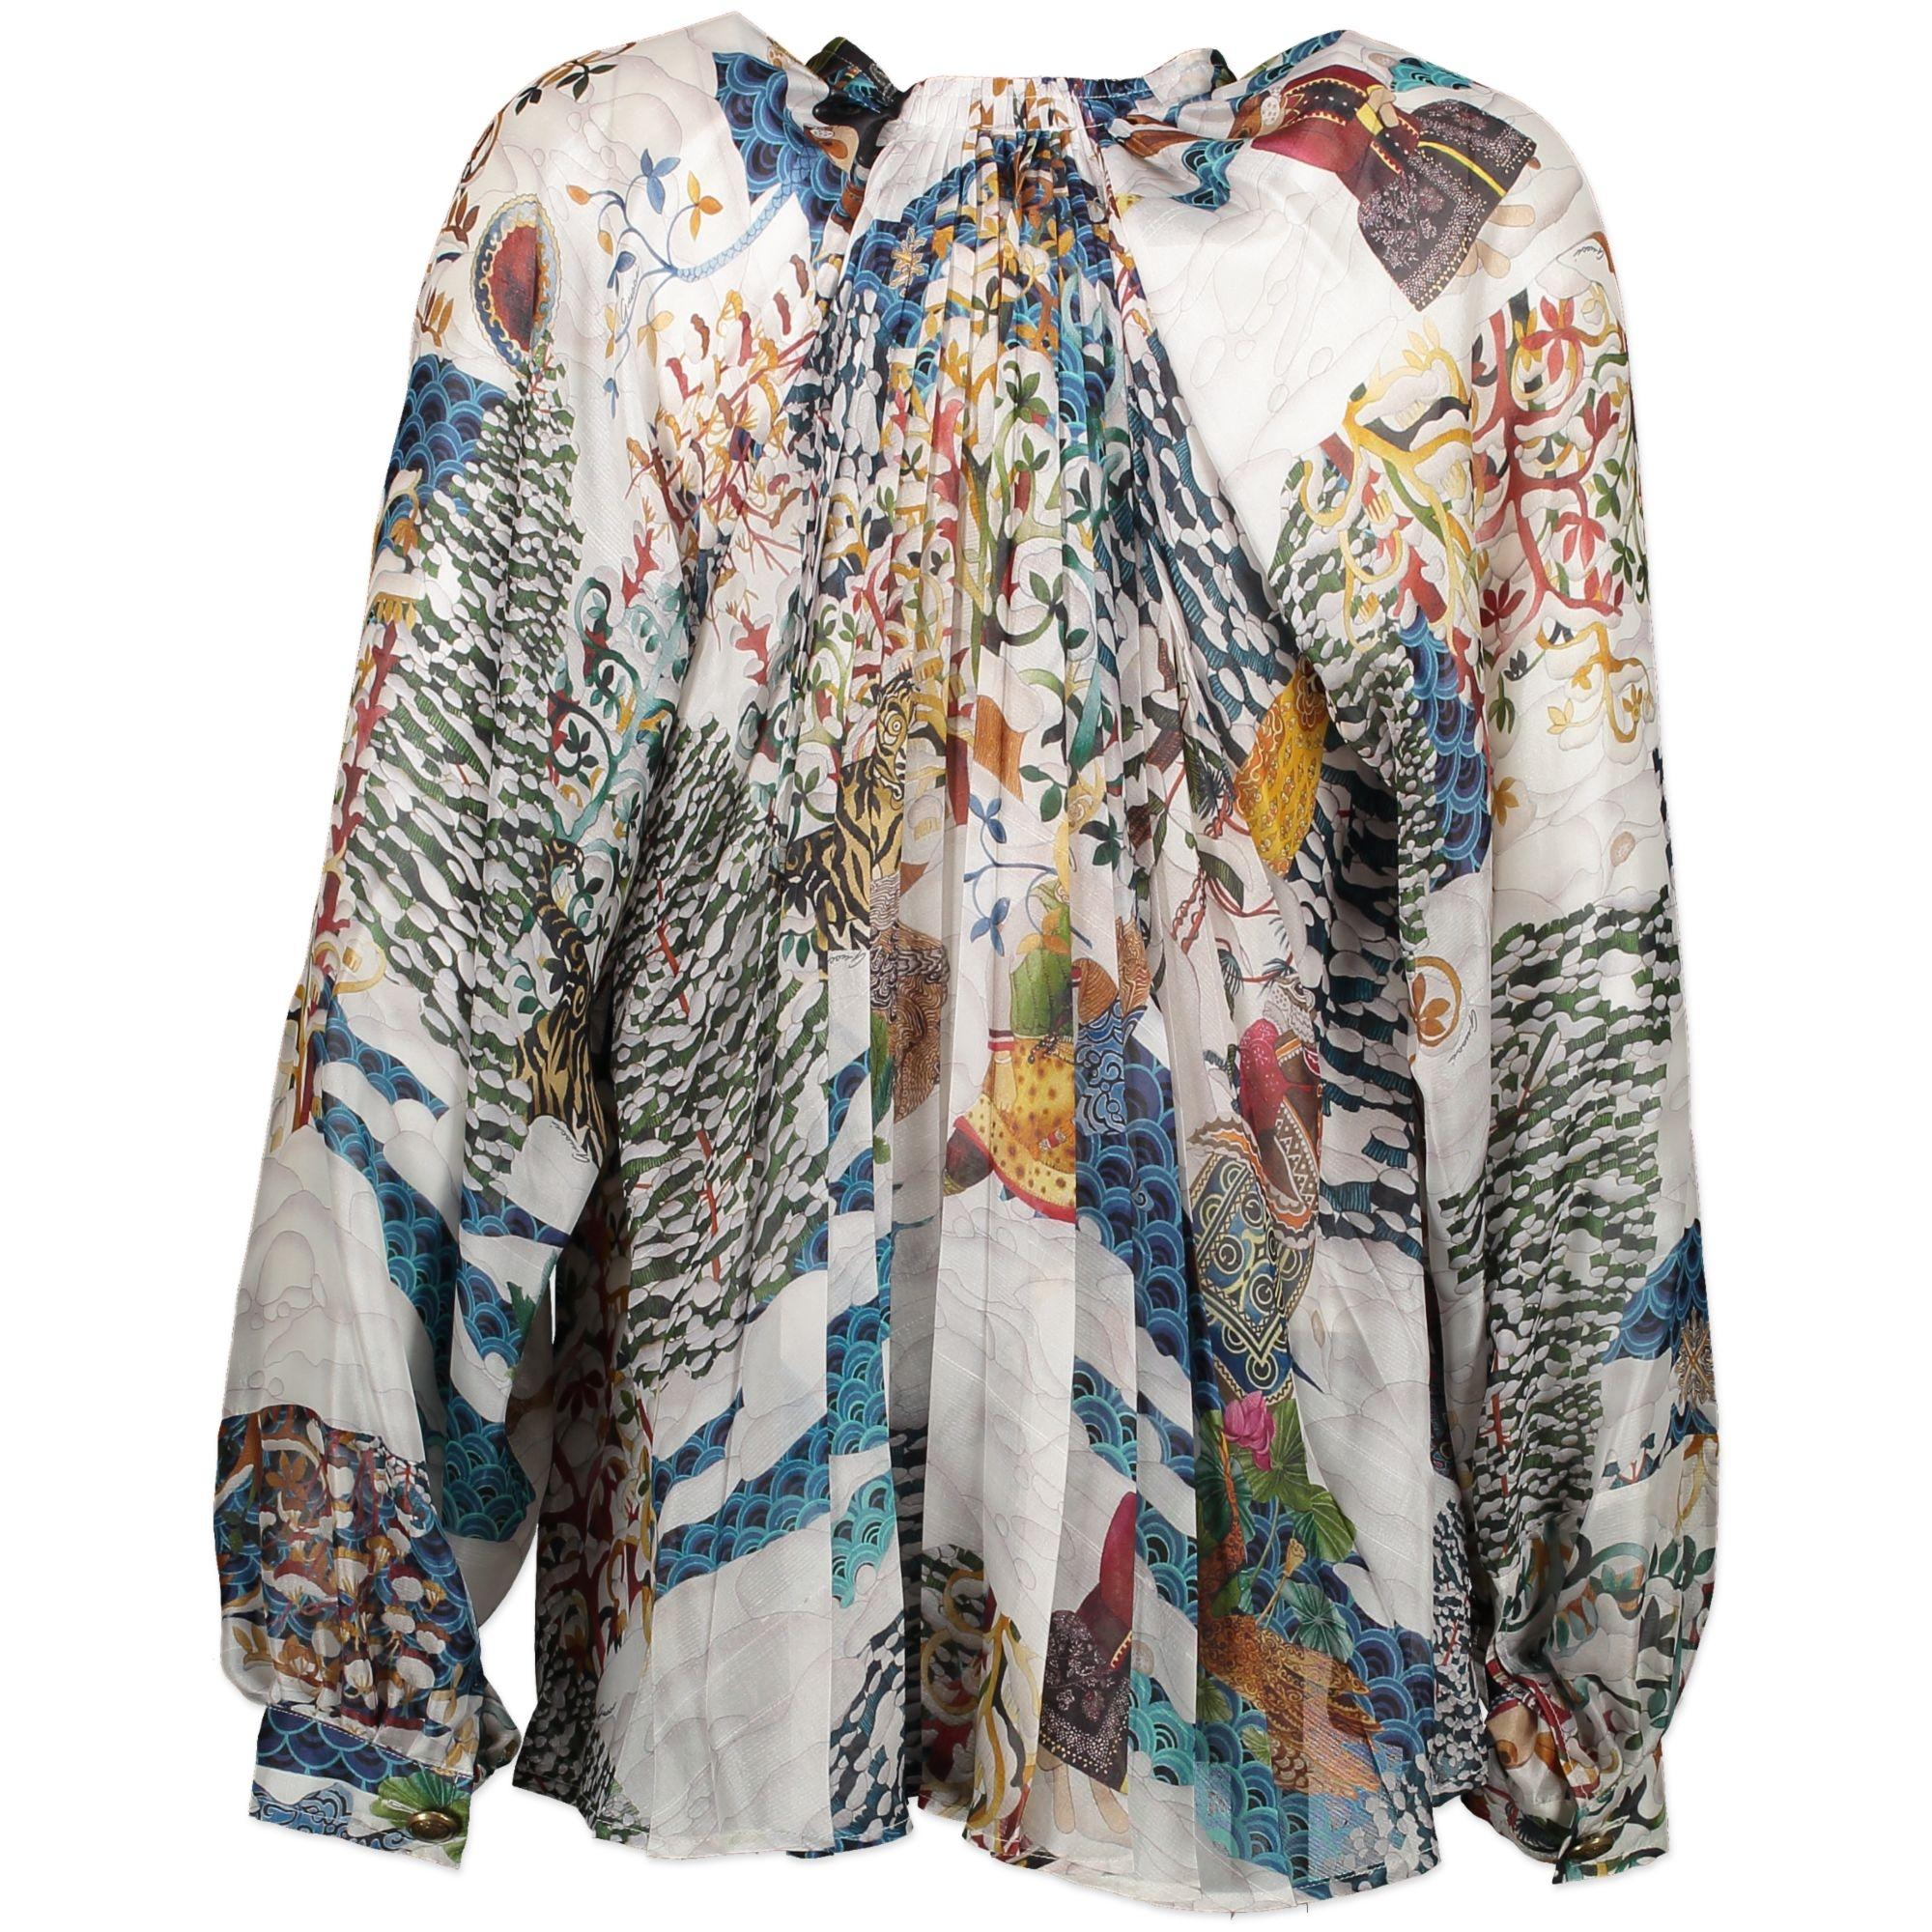 8eeed6482 Gucci 100% Silk Printed Blouse - Size 38 For Sale at 1stdibs